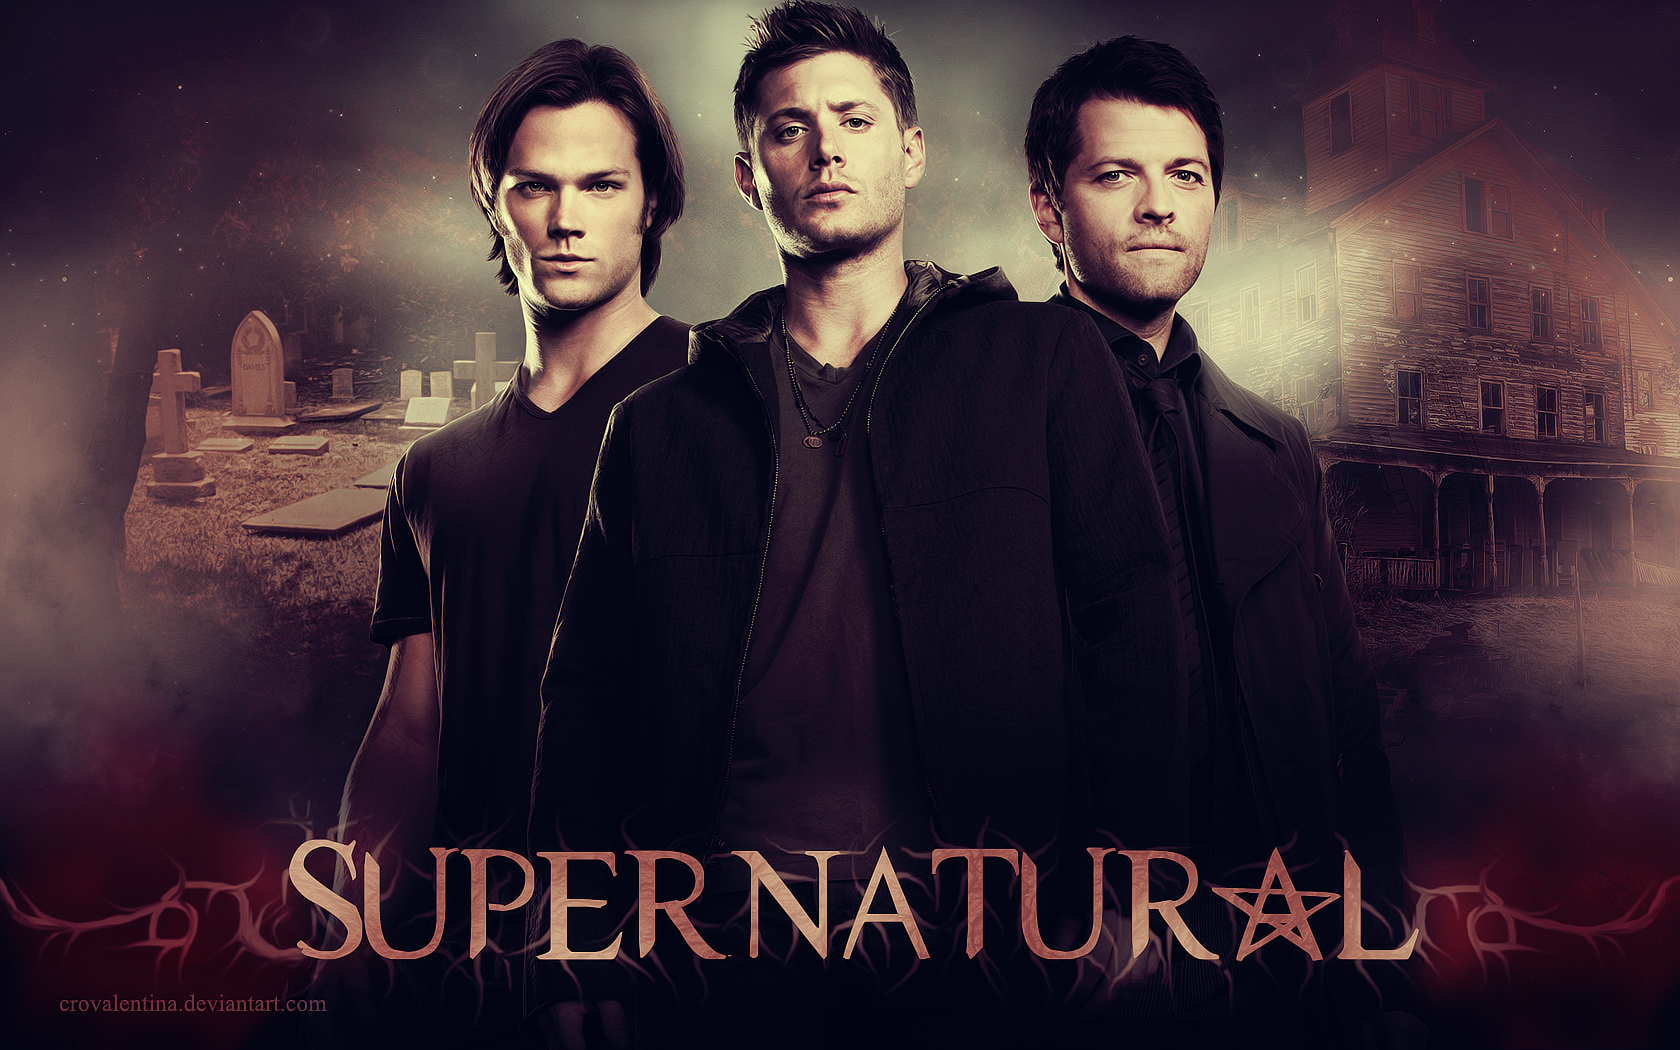 https://i2.wp.com/images5.fanpop.com/image/photos/30500000/Supernatural-supernatural-30545991-1680-1050.jpg